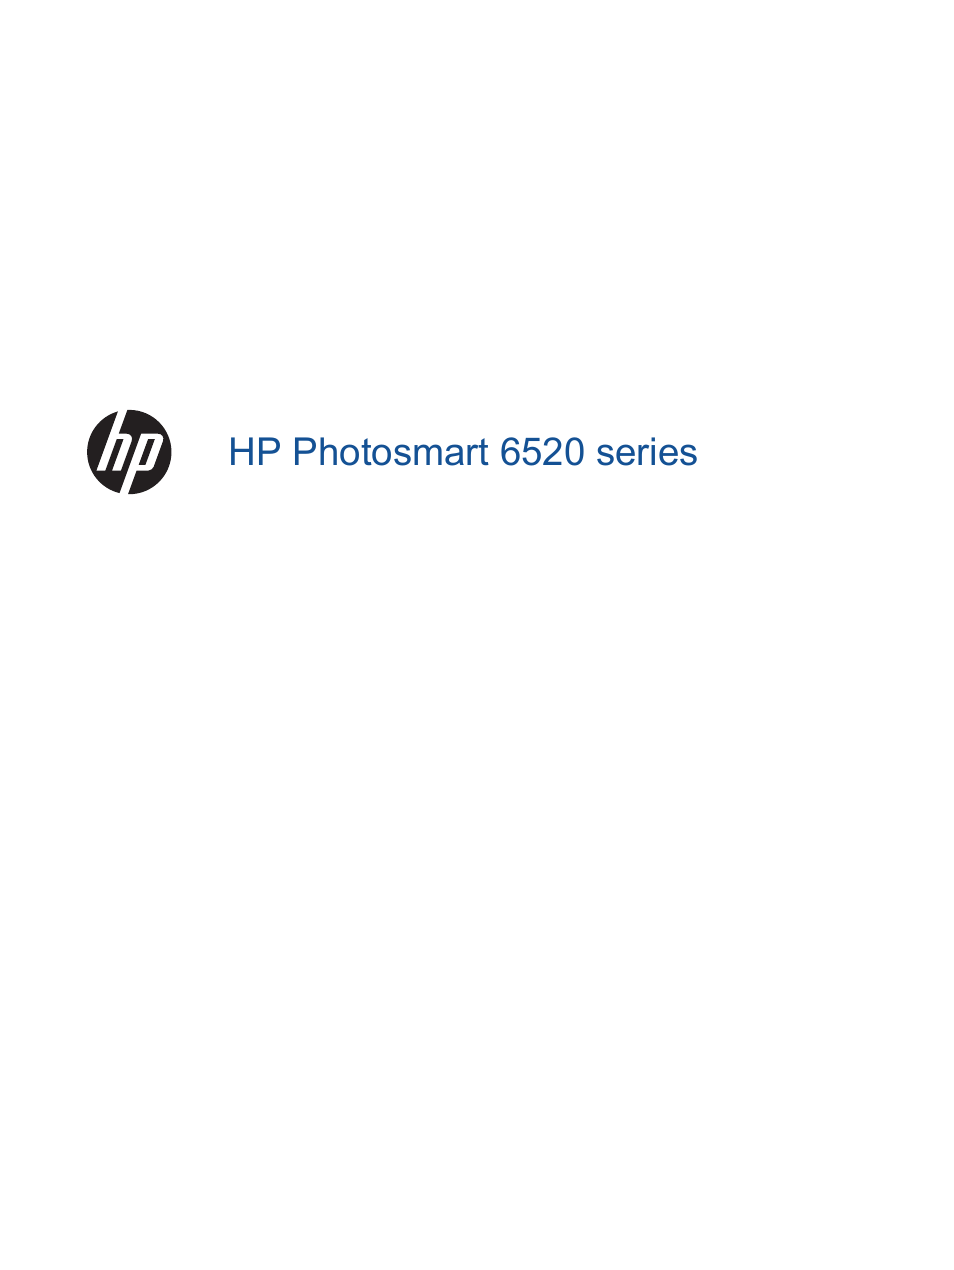 Hp photosmart 6520 e all in one printer manual all the best hp envy 5660 wireless all in one photo printer with fandeluxe Images